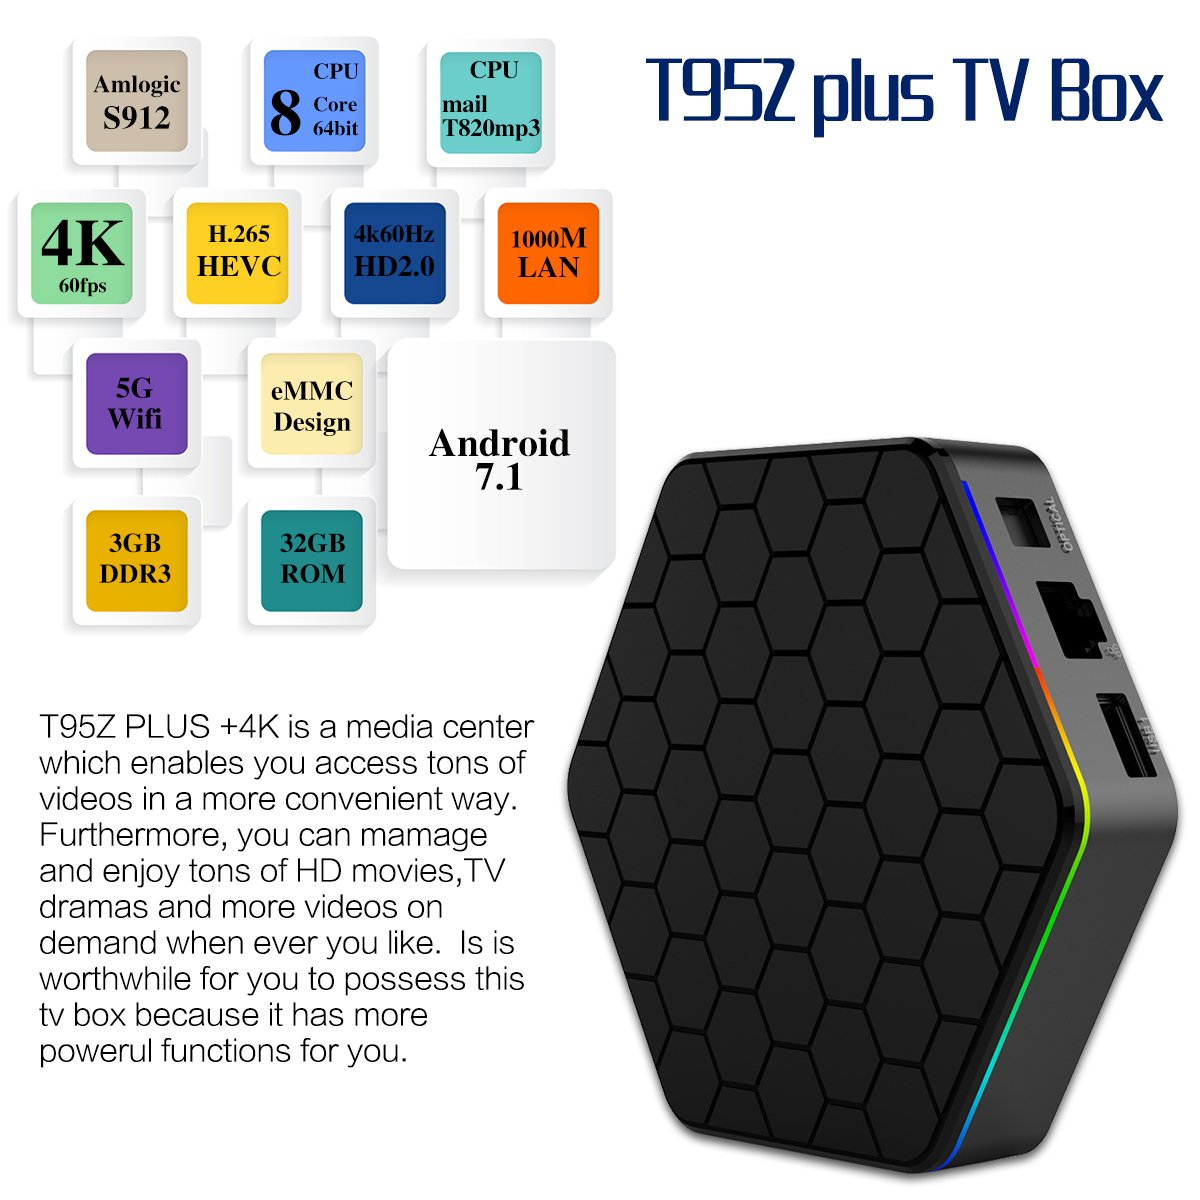 YAGALA T95Z Plus Android 7.1 TV Box 3GB RAM//32GB ROM Octa Core Amlogic S912 TV Box support 4K Dual Band WiFi 2.4GHz//5GHz Bluetooth 4.0 HDMI Ethernet 64 Bits